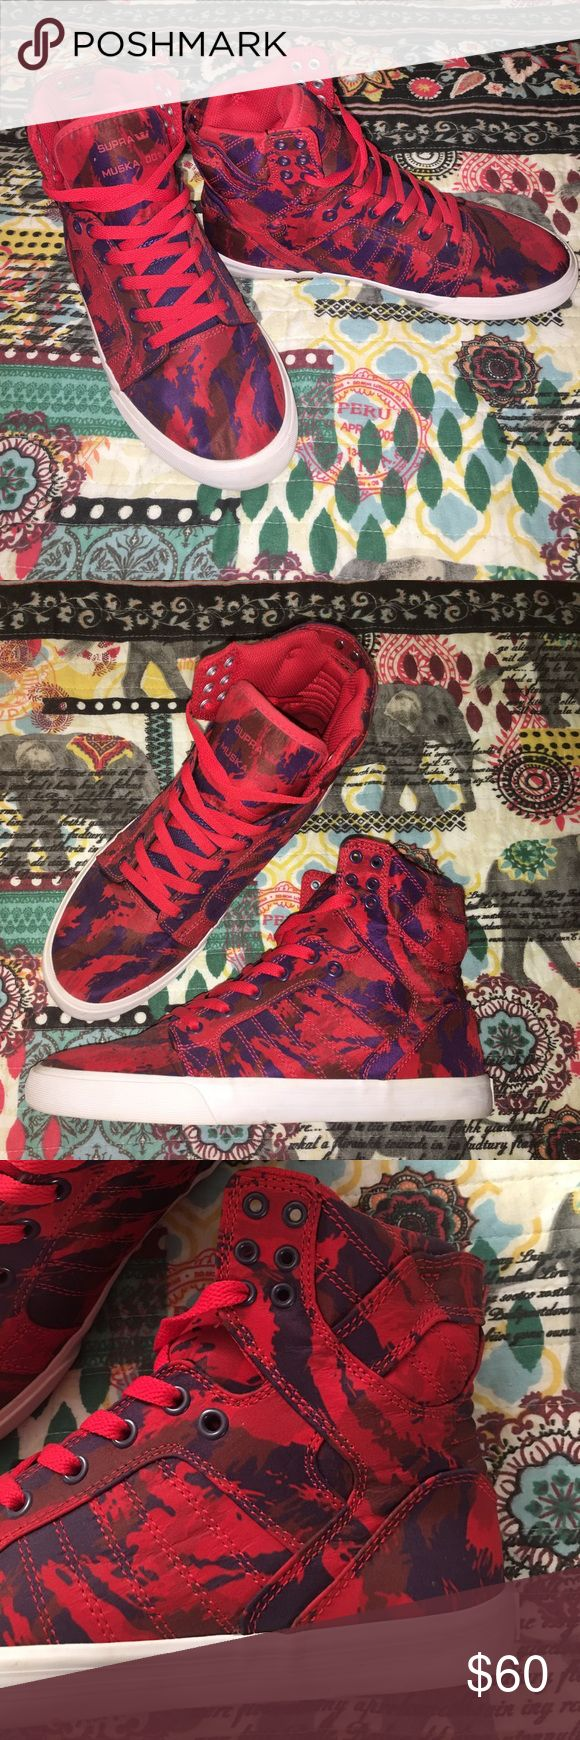 Supra Muska 001 Red Purple Camo Hi Top Sneaker Comfortable, worn once, bought years ago and never wore them again. Camo Pattern is red, purple, and maroon. These shoes are in fantastic condition and need a new home! Supra Shoes Sneakers